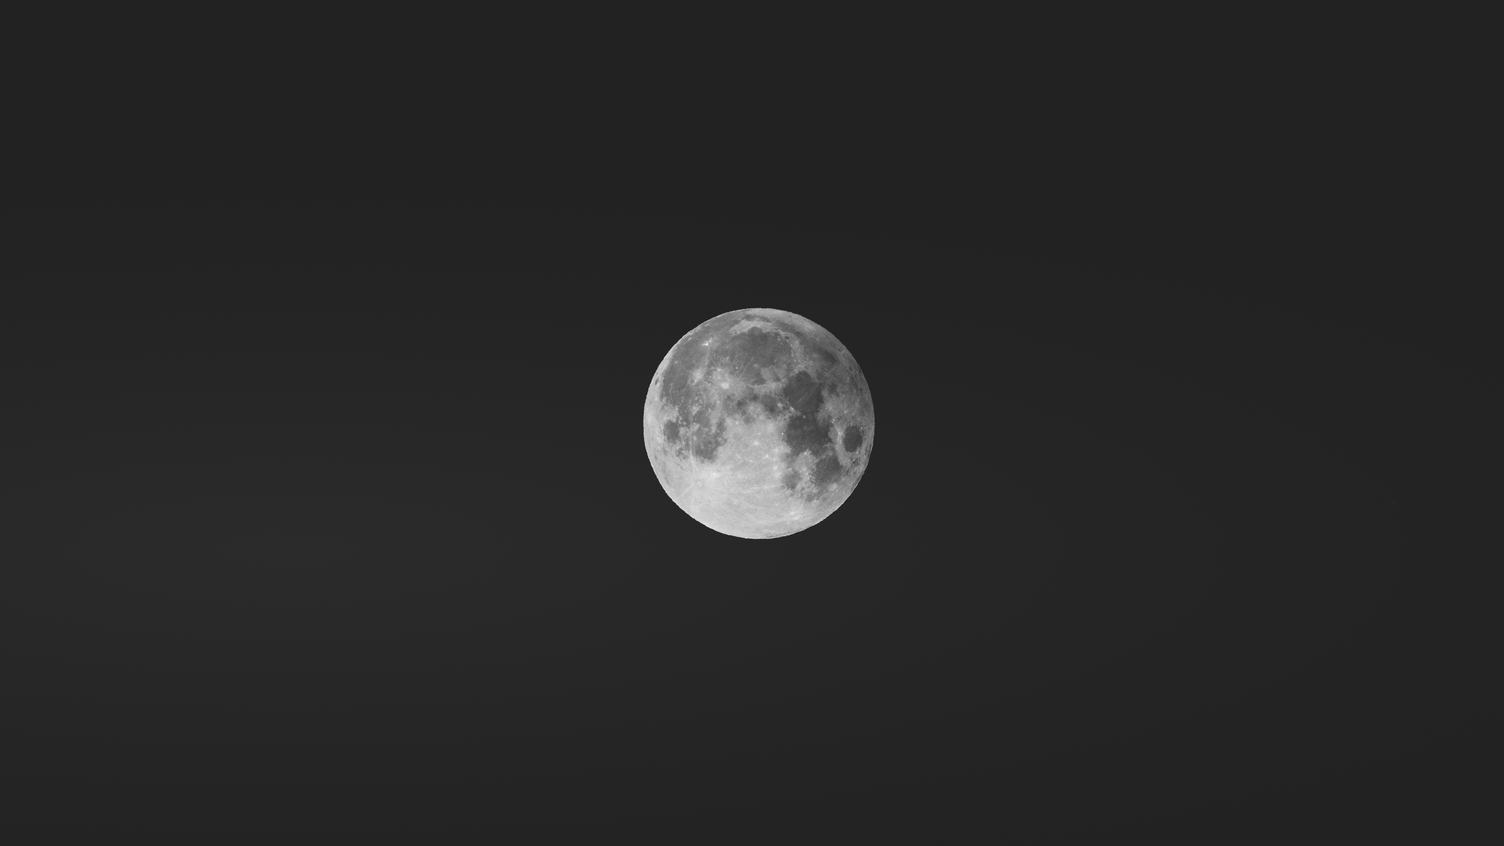 Clear Night Sky with Bright Full Moon